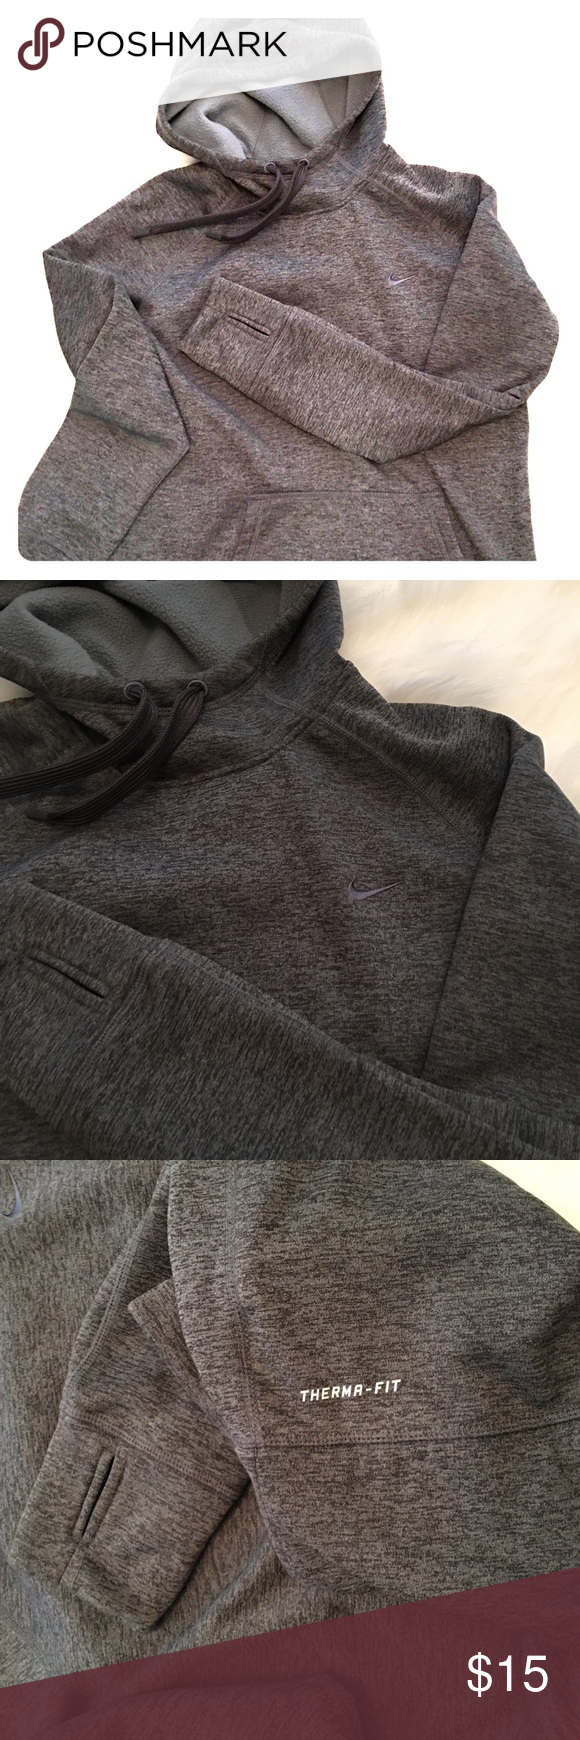 Nike sweatshirt Therma Fit Nike sweatshirt. Great condition! Soooo soft and comfy- great for fall/winter runs or workouts. Or lounging... lounging is ALWAYS great 😜 Nike Tops Sweatshirts & Hoodies